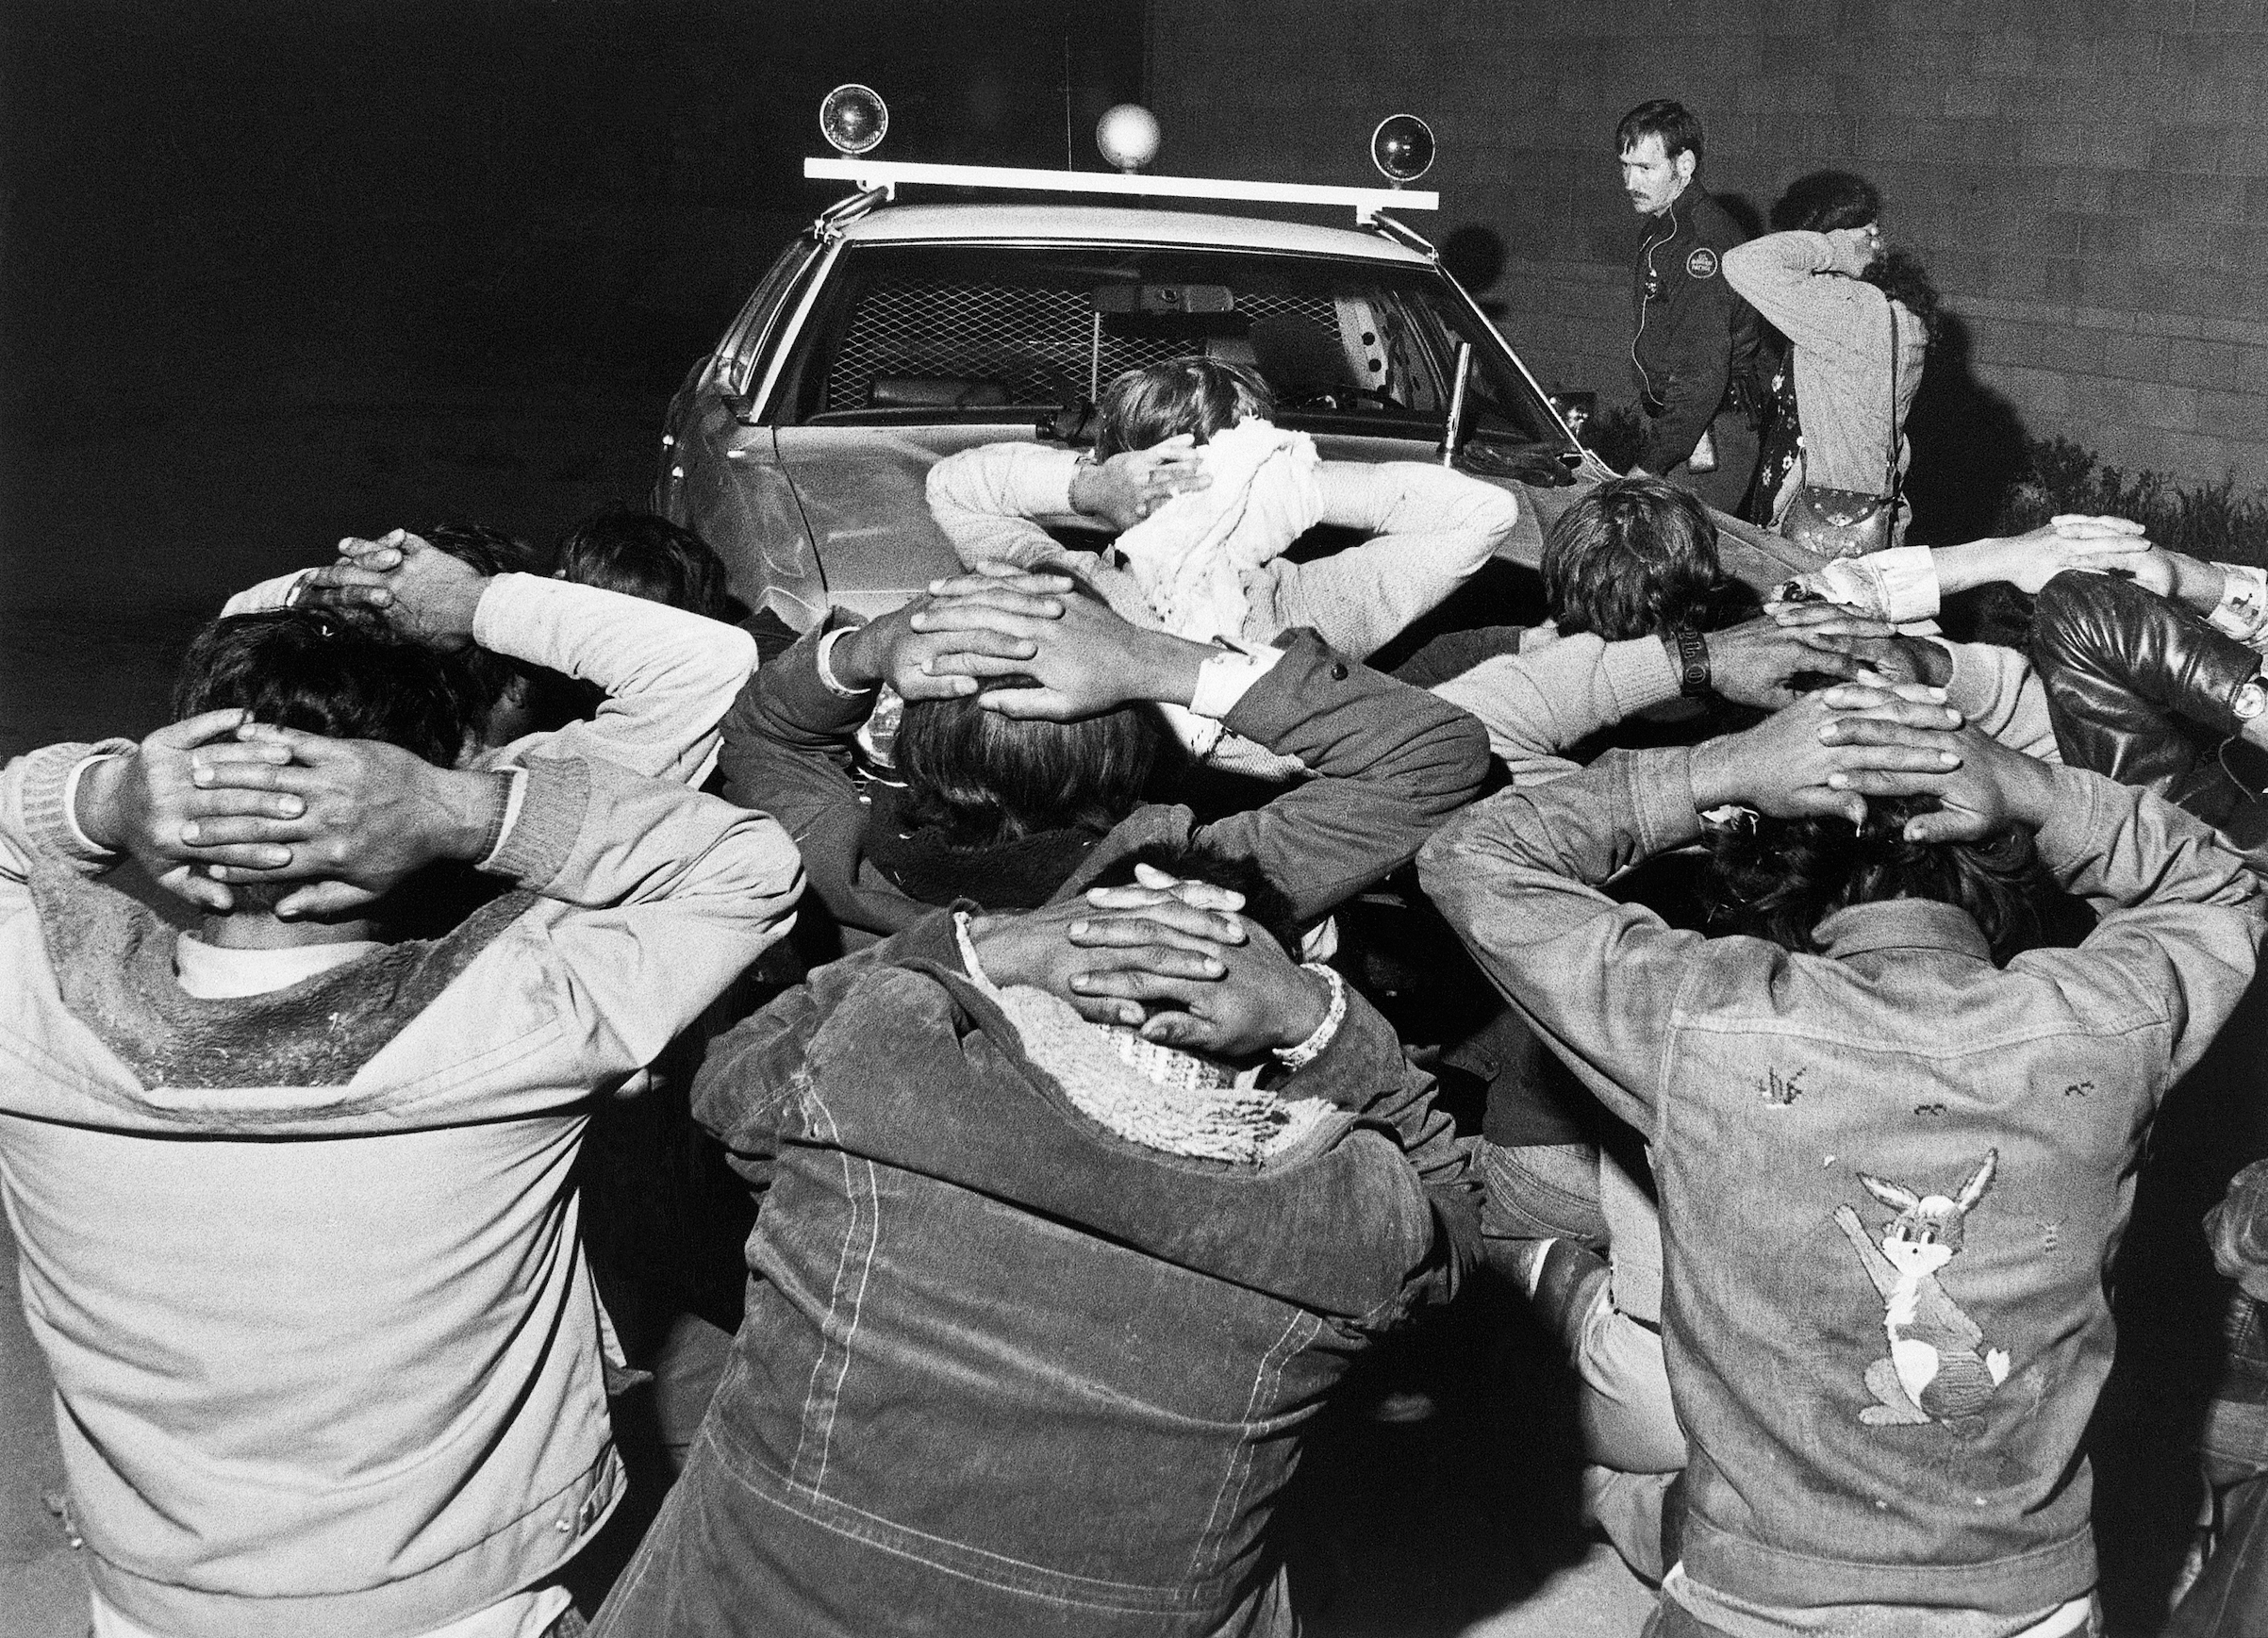 Men who have been caught trying to cross the border from Mexico to the United States, in Tijuana, Mexico, on May 11, 1977.